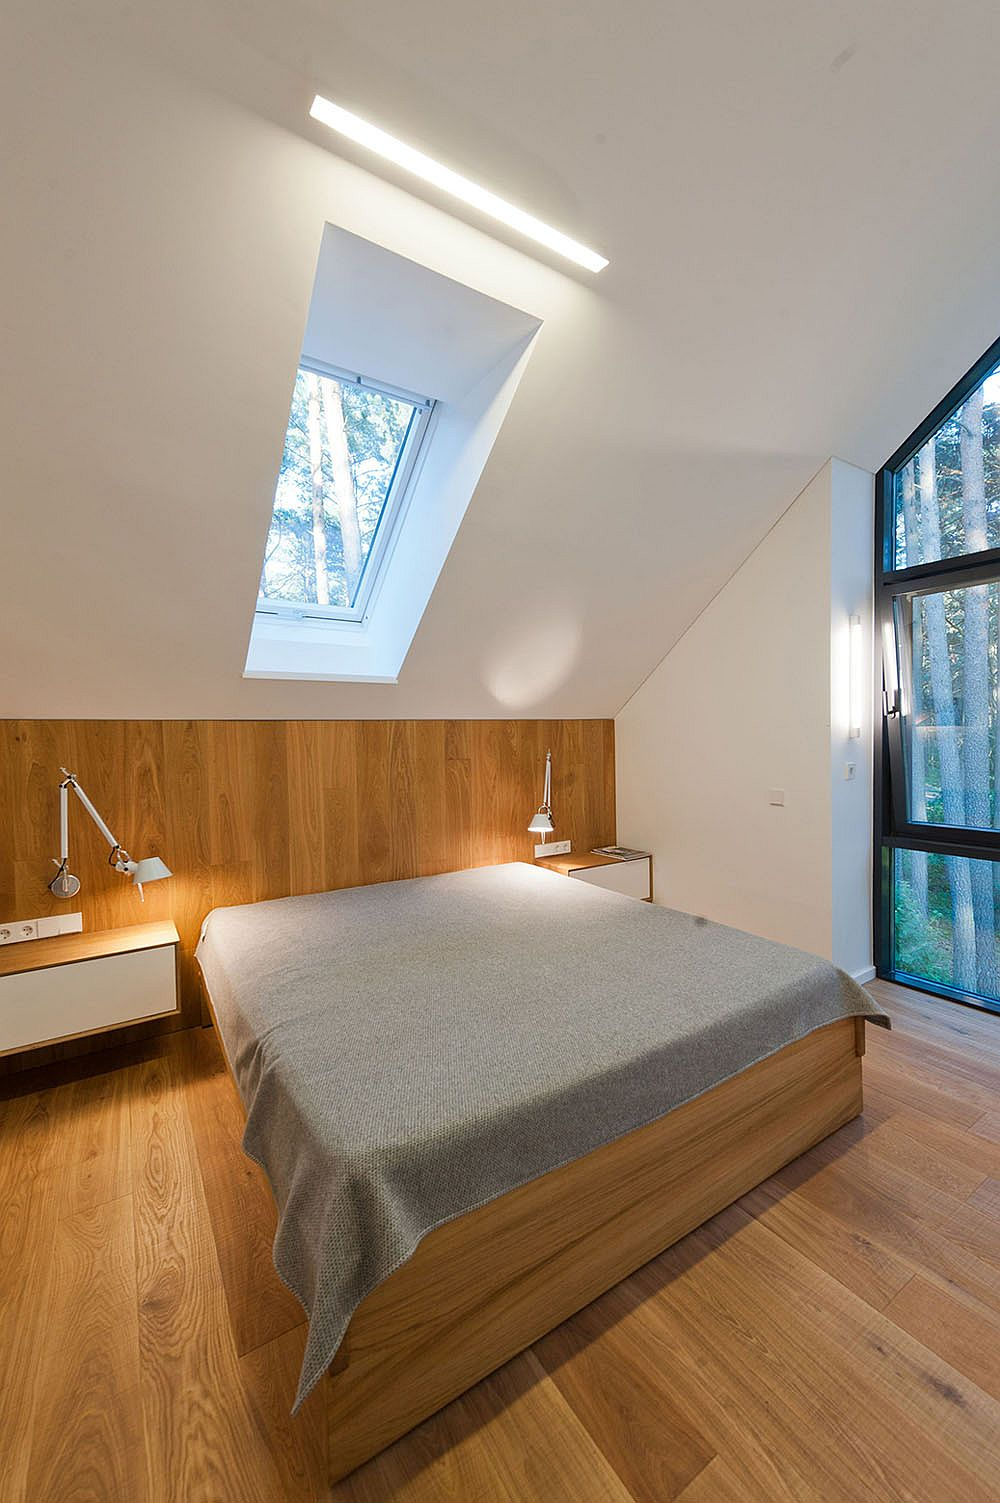 Bedroom on top floor overlooking the forest landscape outside